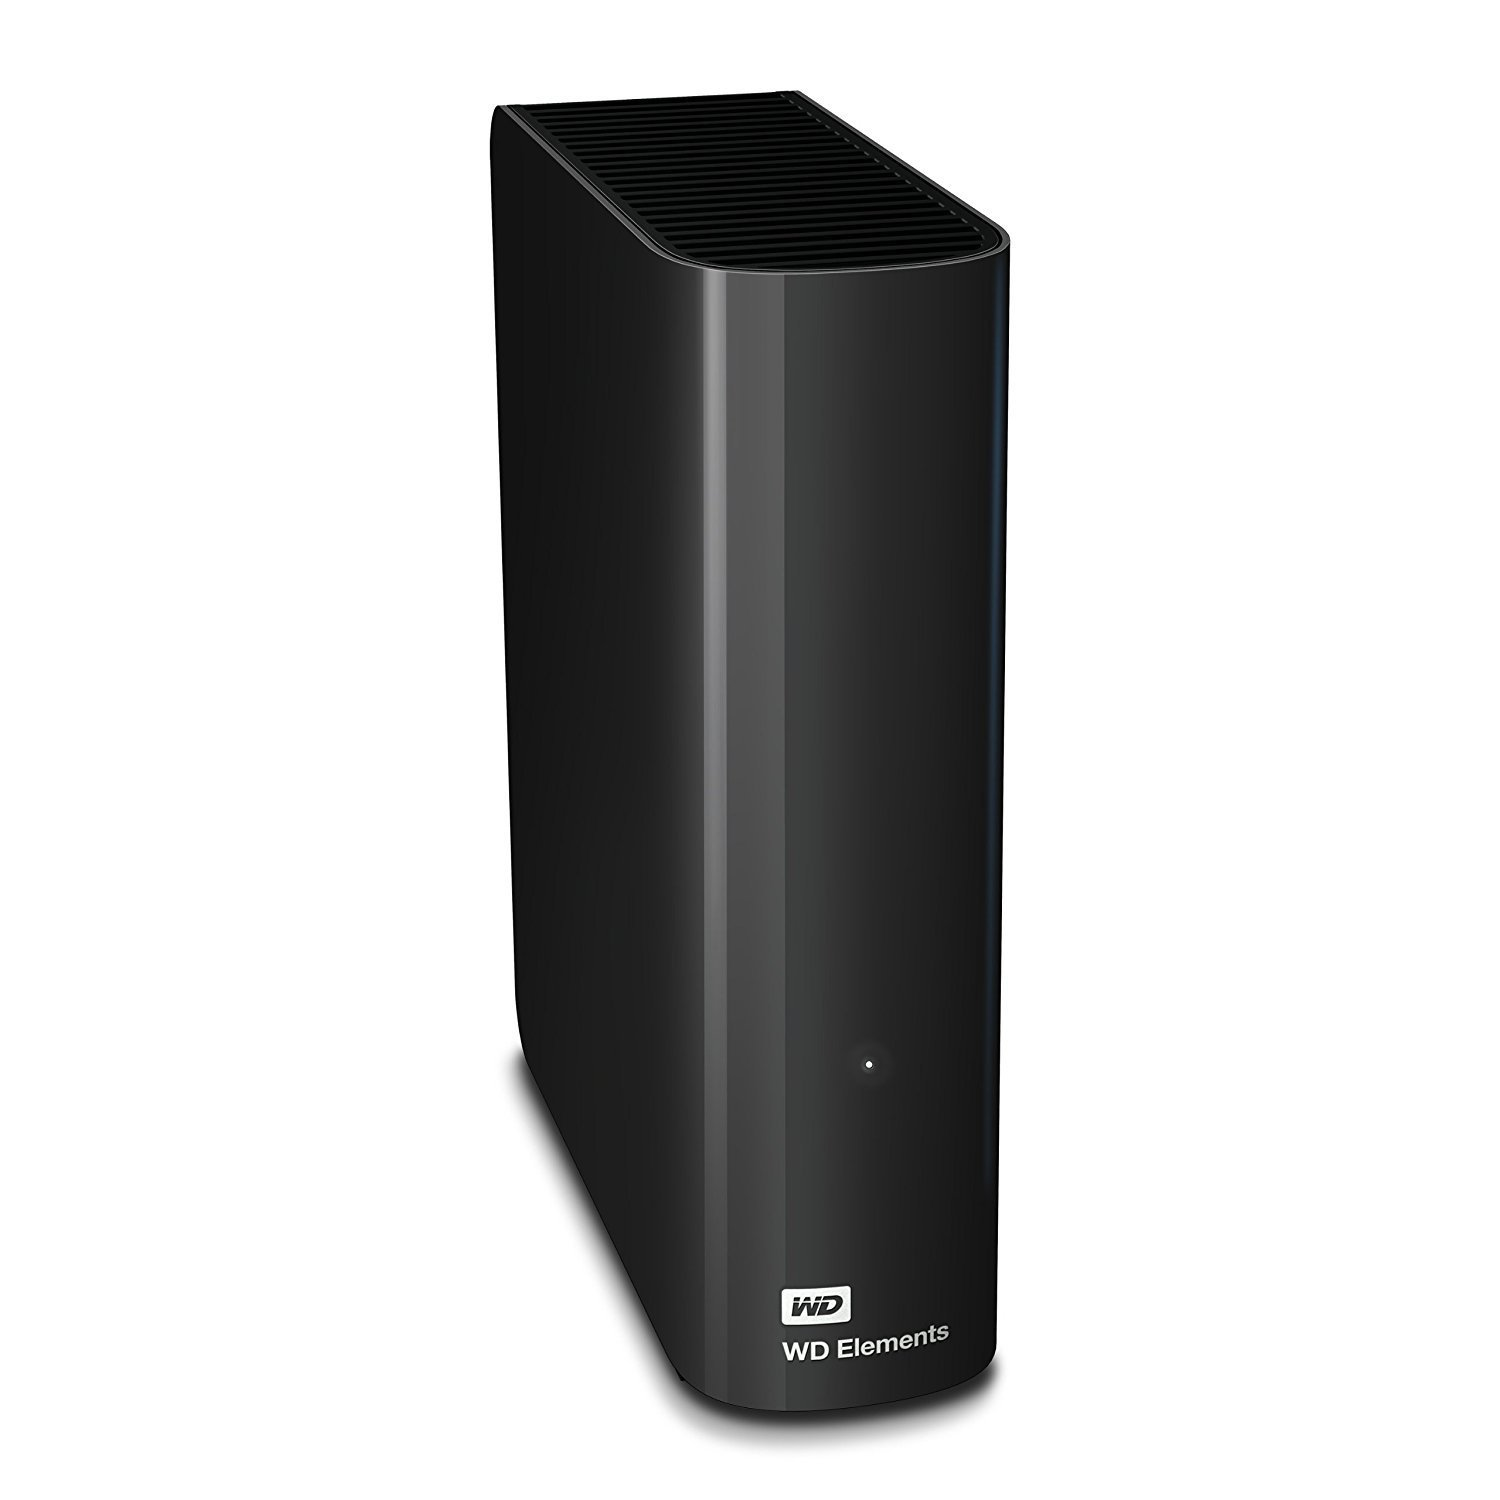 Western Digital Elements externe USB Festplatte amazon